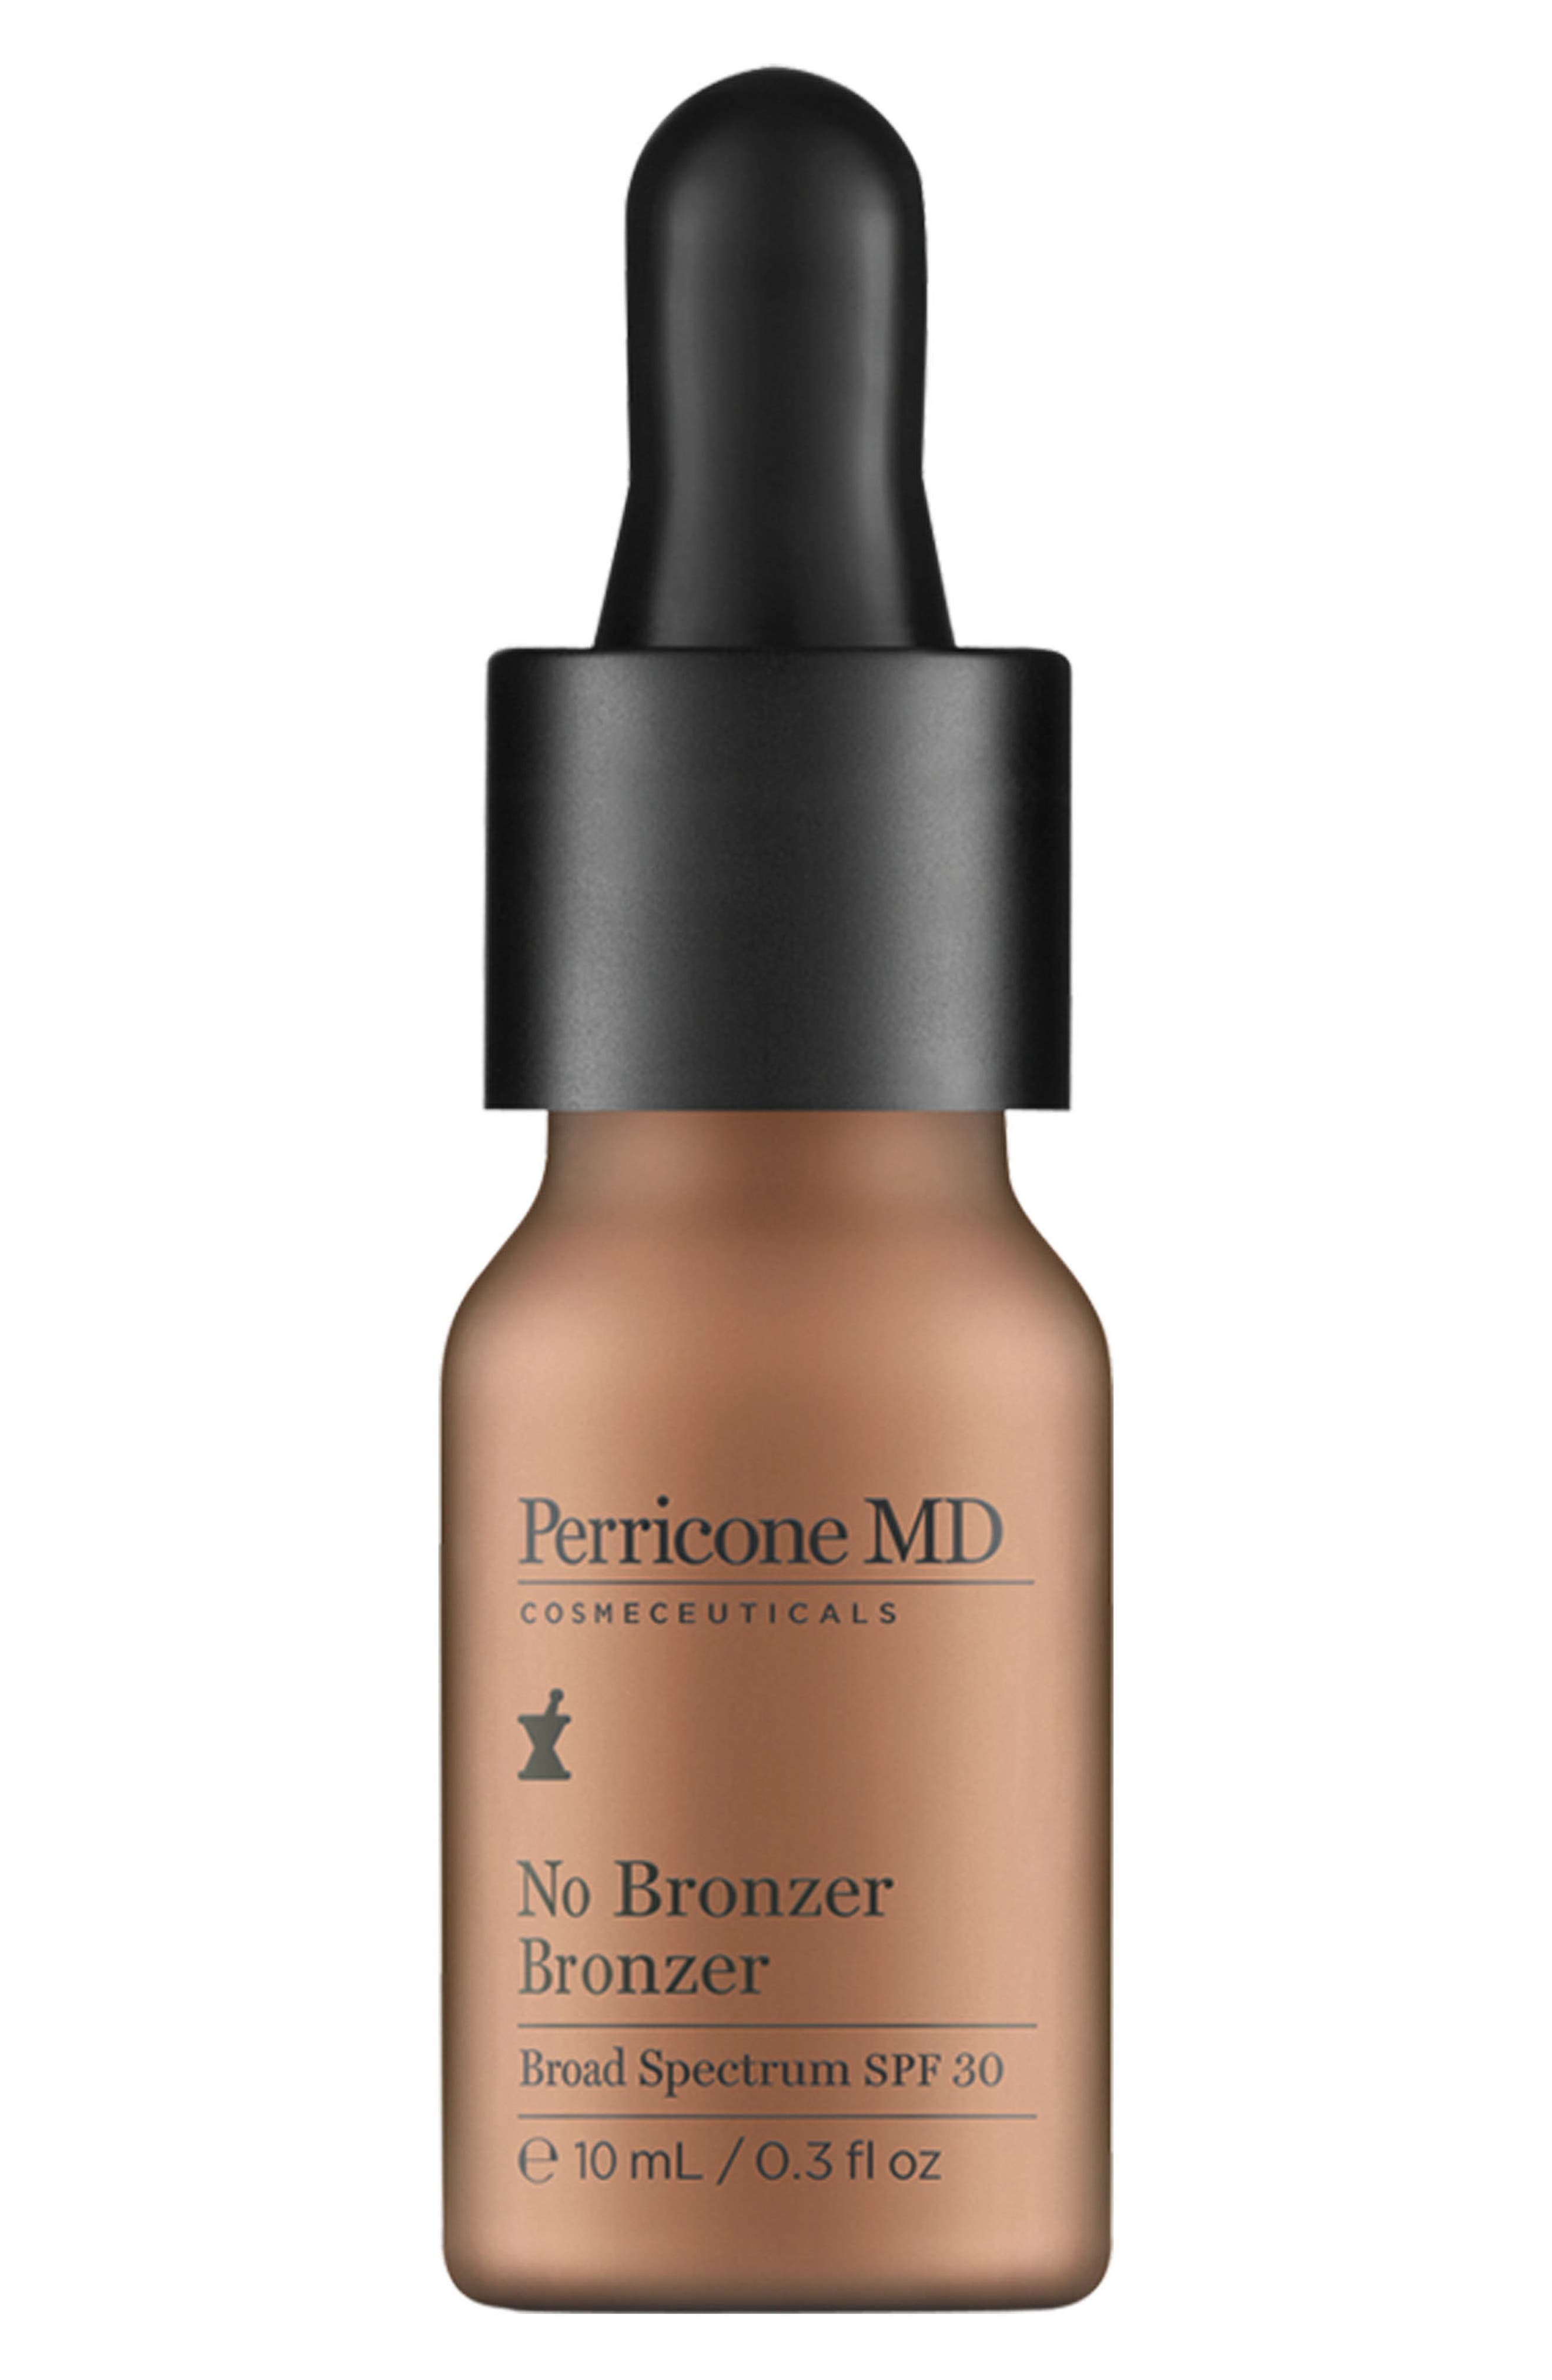 Alternate Image 1 Selected - Perricone MD No Bronzer Bronzer Broad Spectrum SPF 30